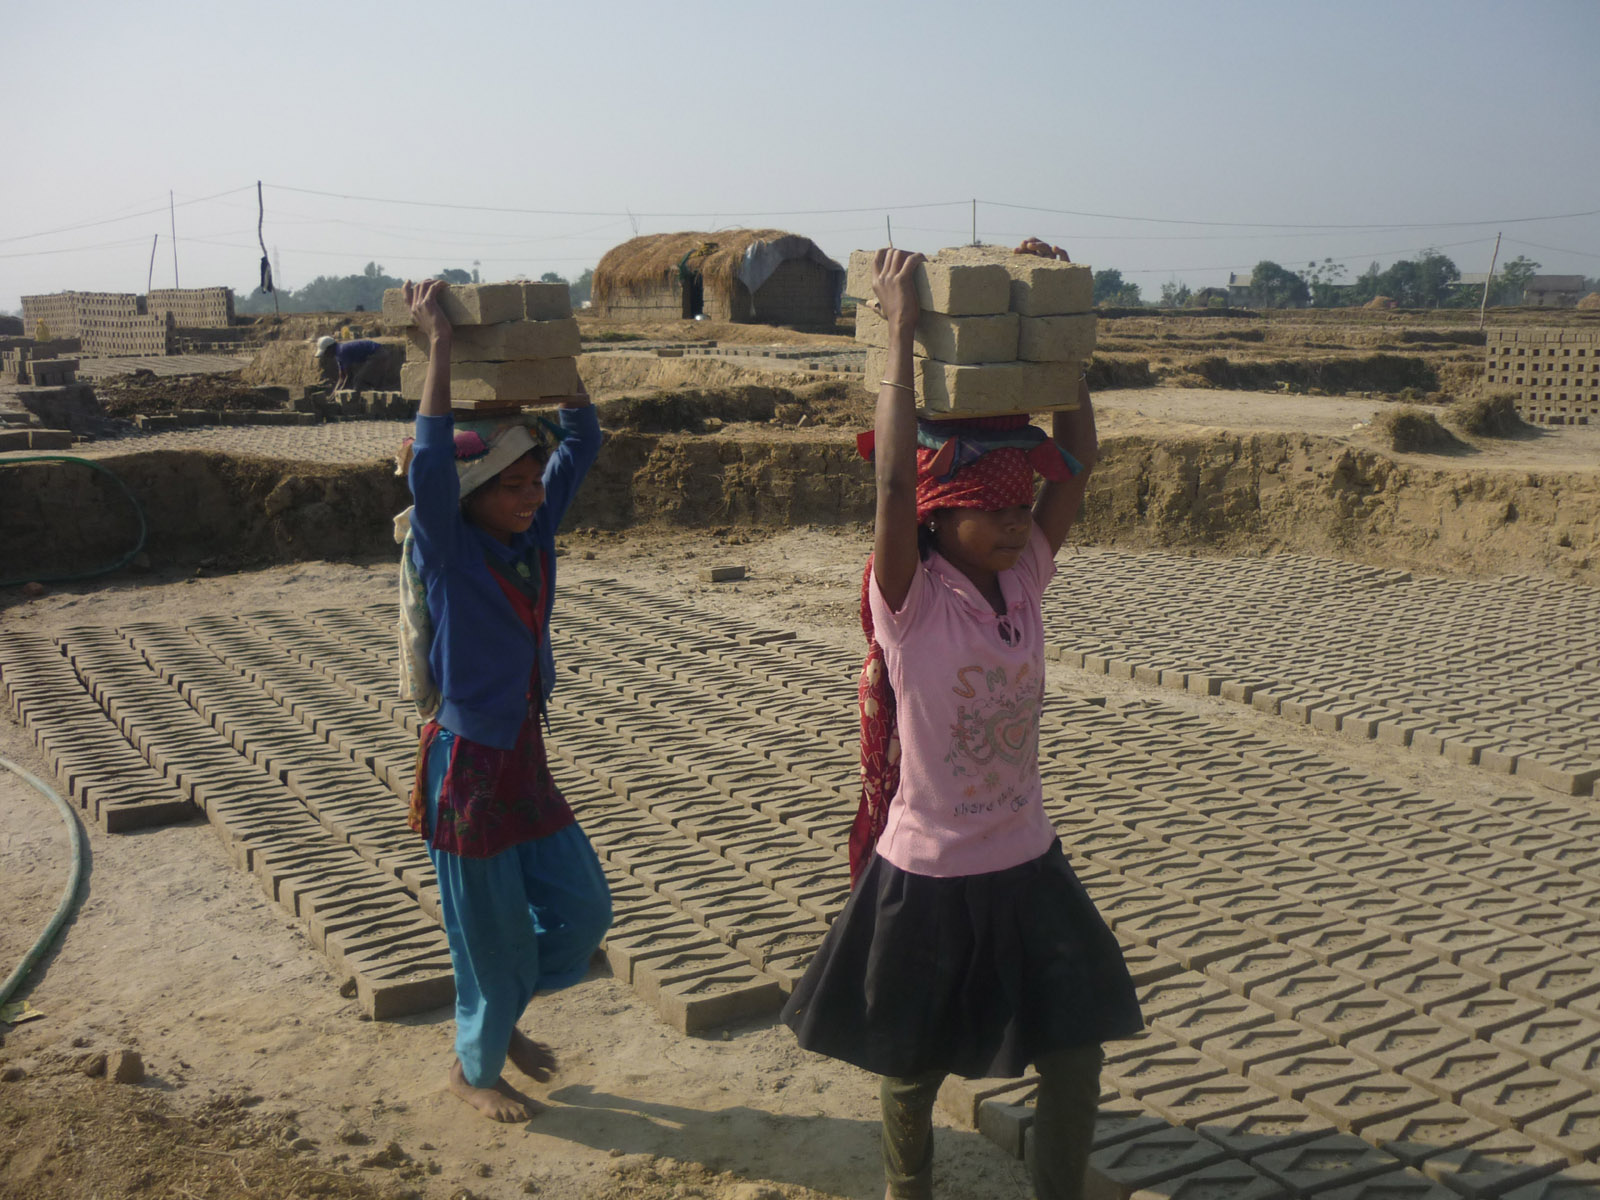 729 words essay on Child Labour (Free to read) Child Labour